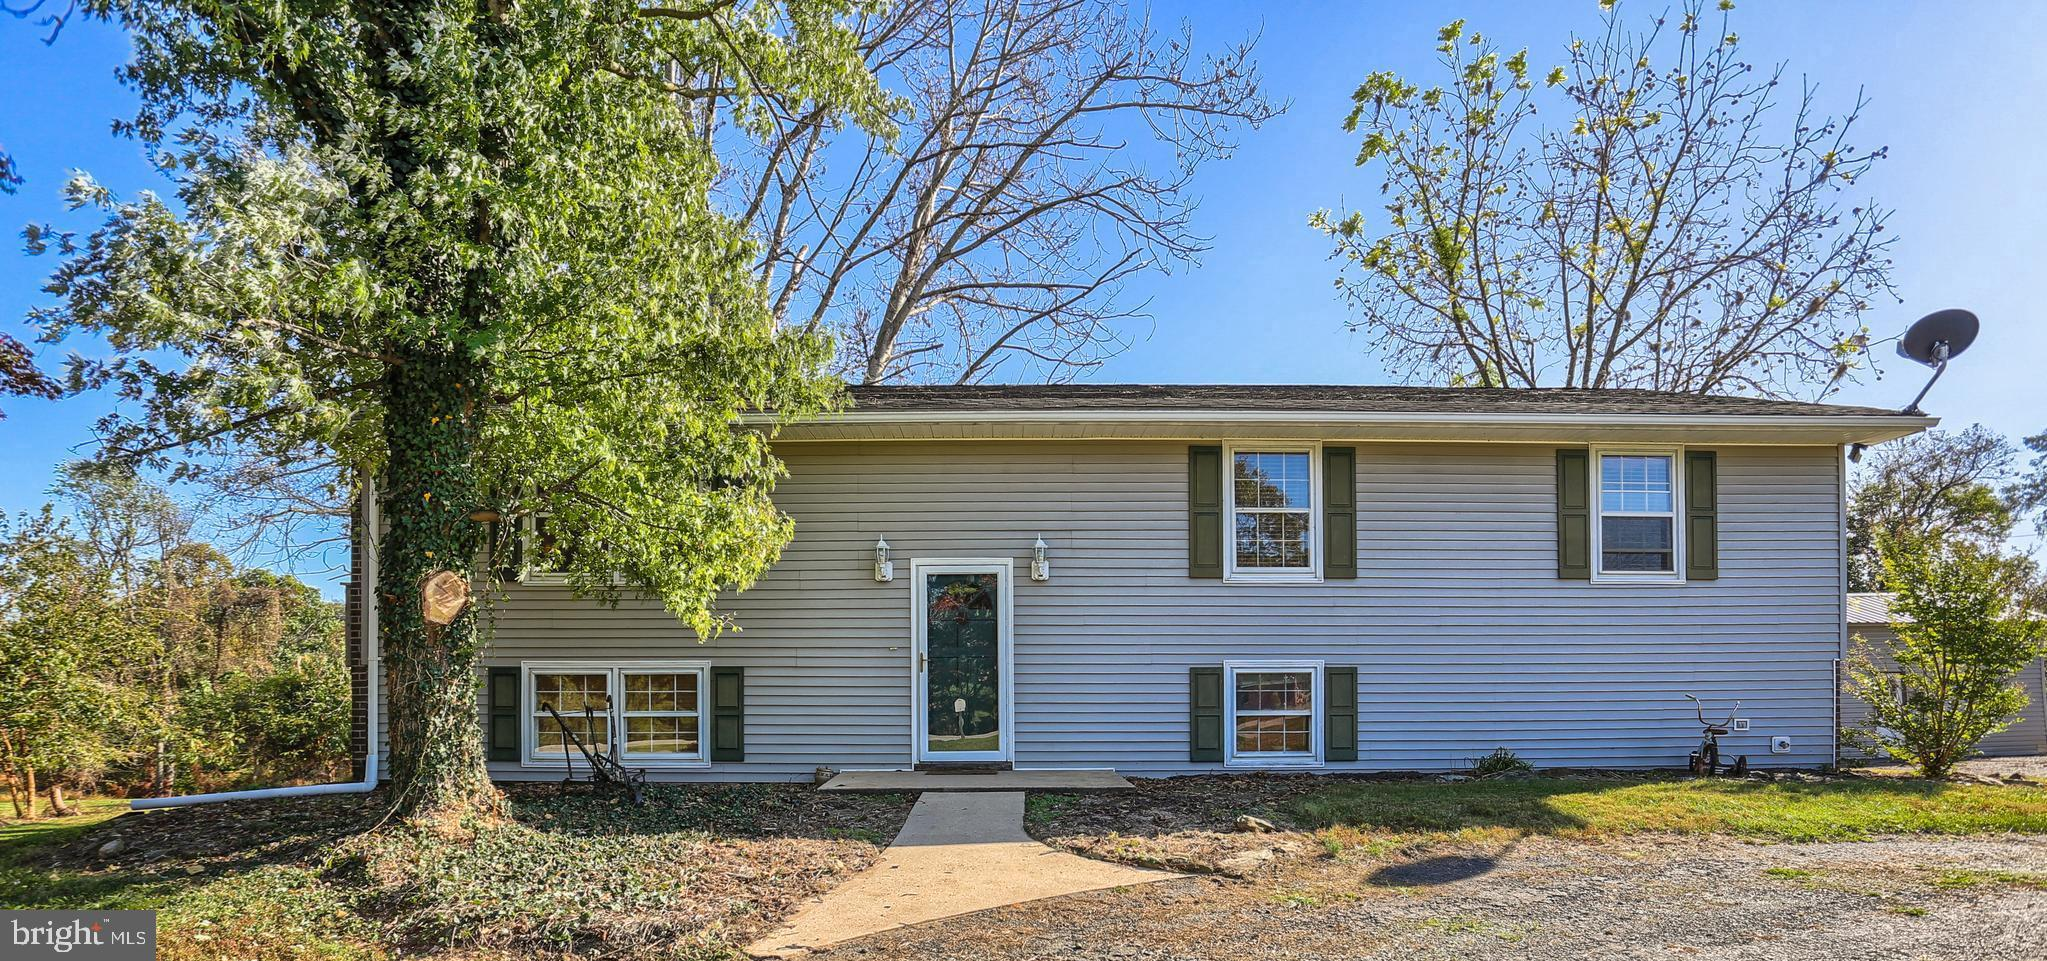 44 SURREY DRIVE, WRIGHTSVILLE, PA 17368